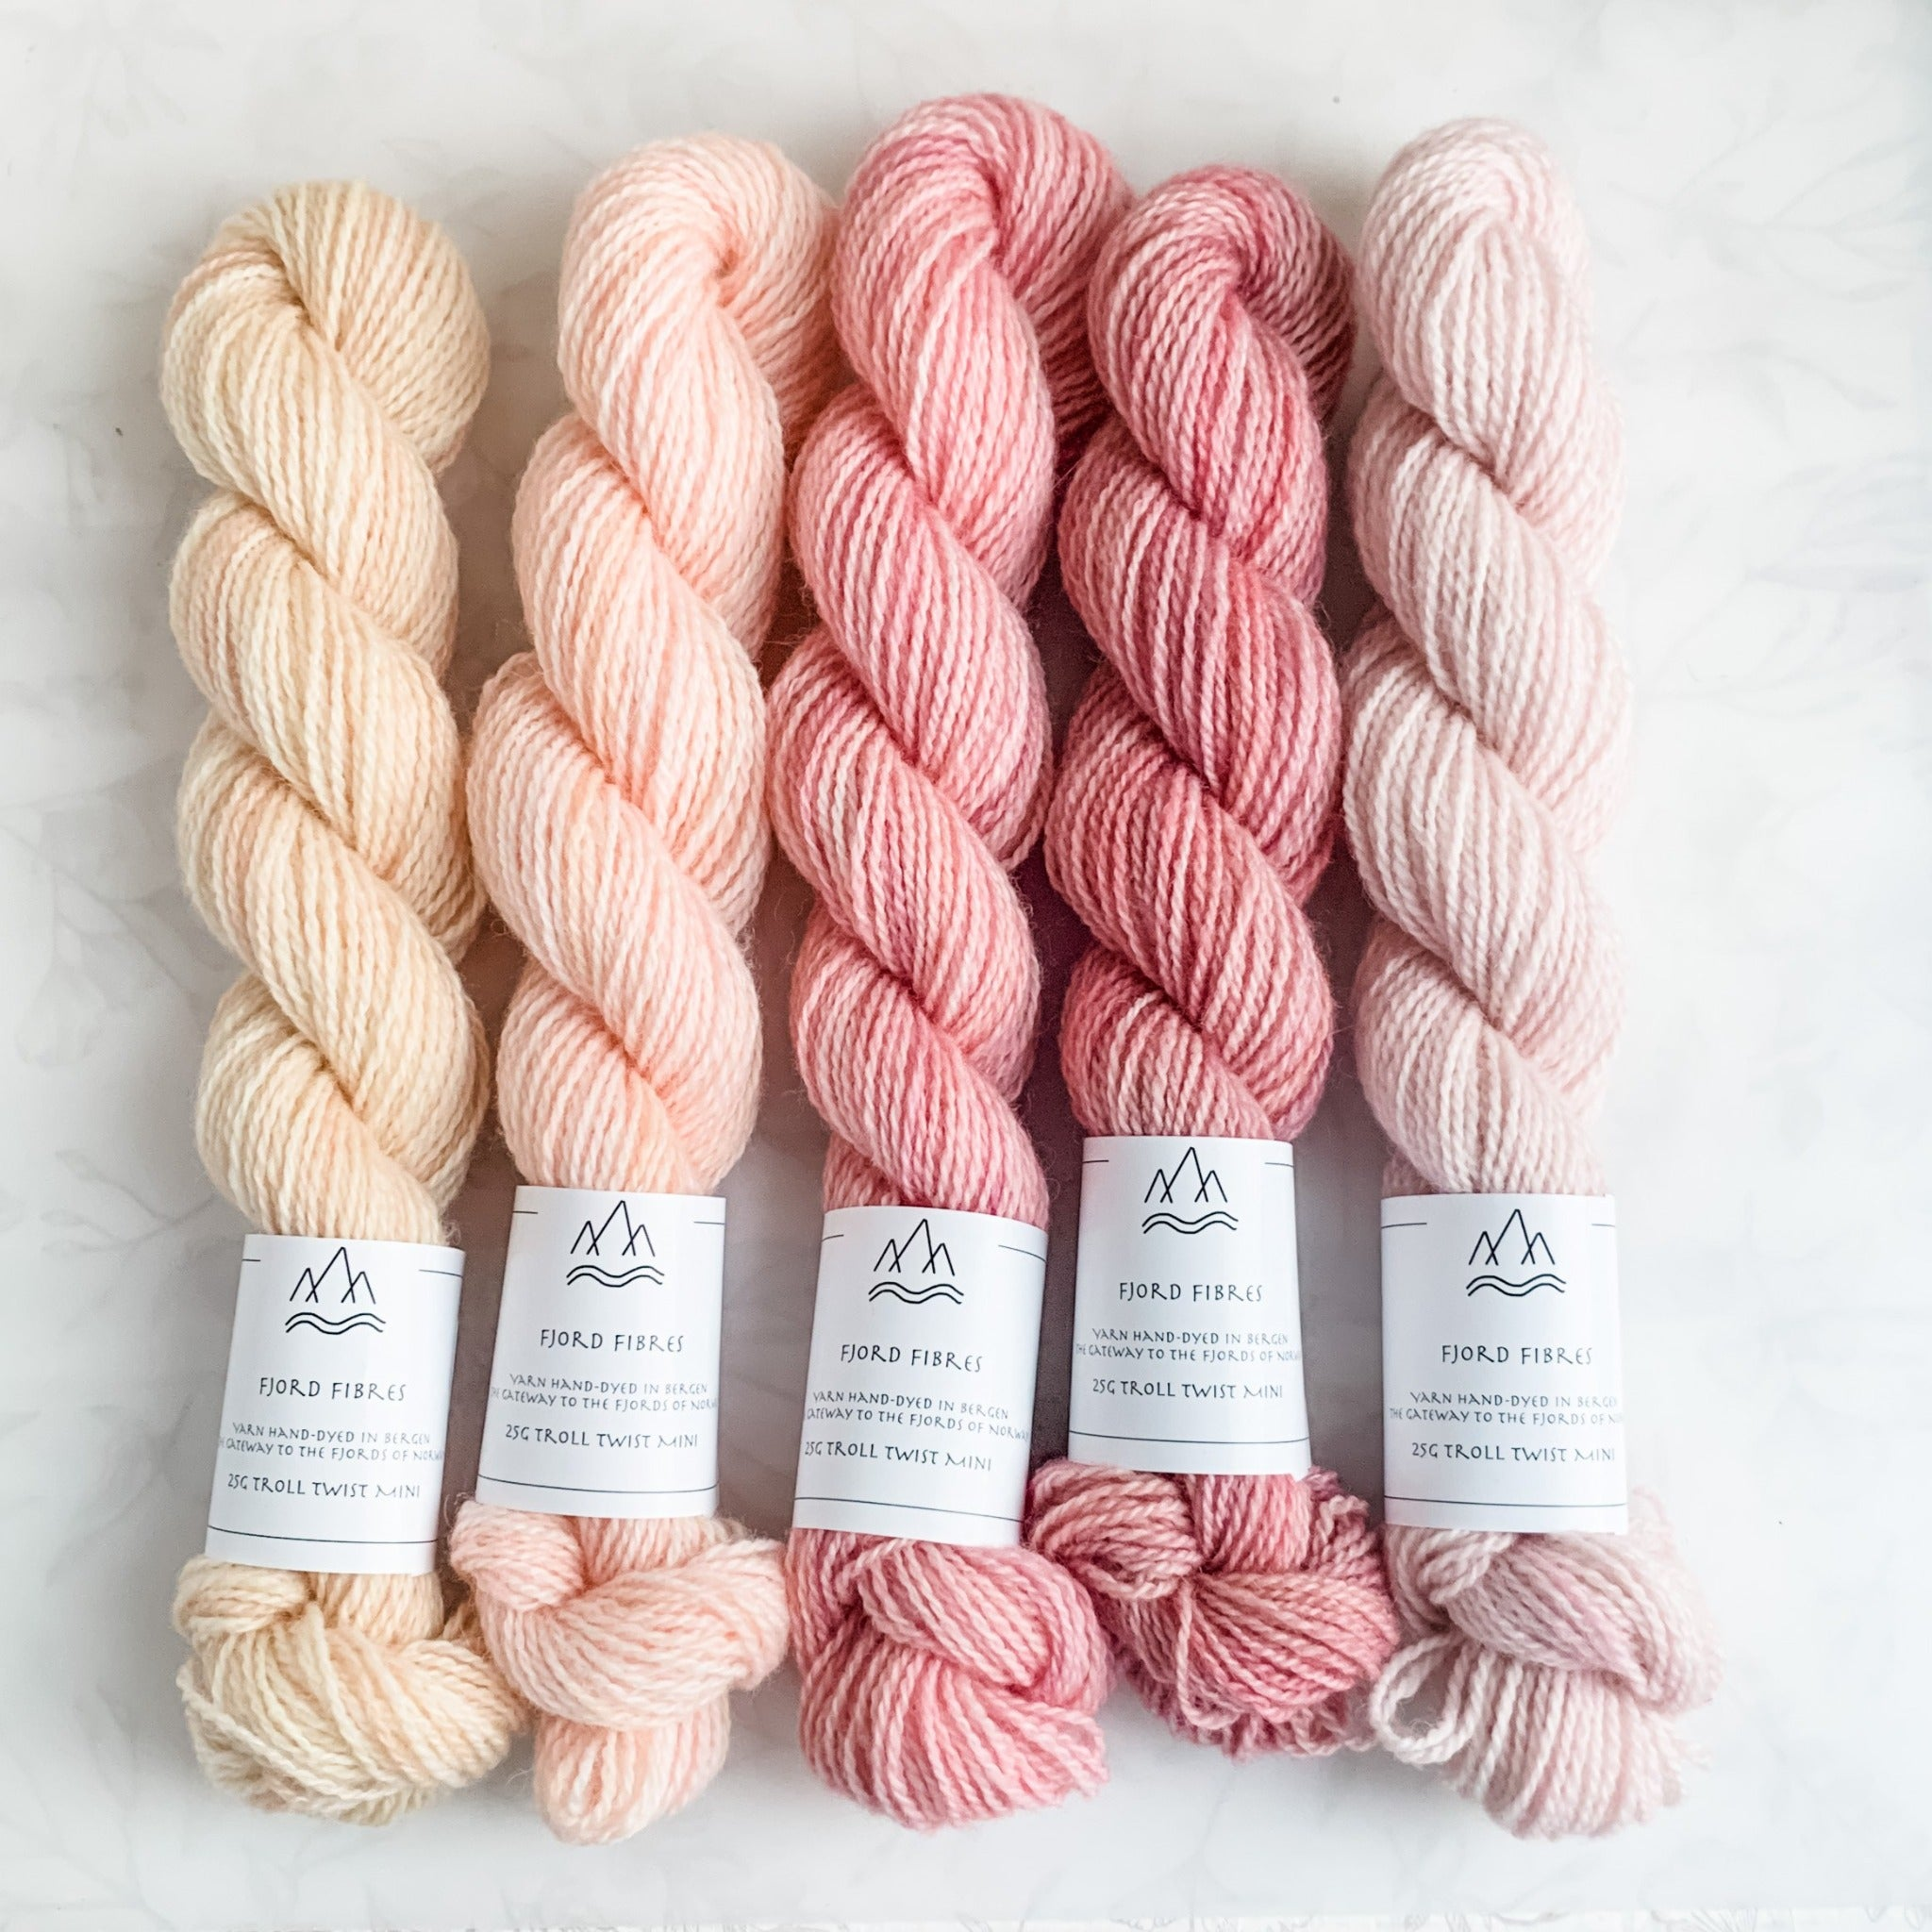 Rose Garden Mini Skein Set - Trollfjord Sock - Hand Dyed Yarn - Variegated Yarn